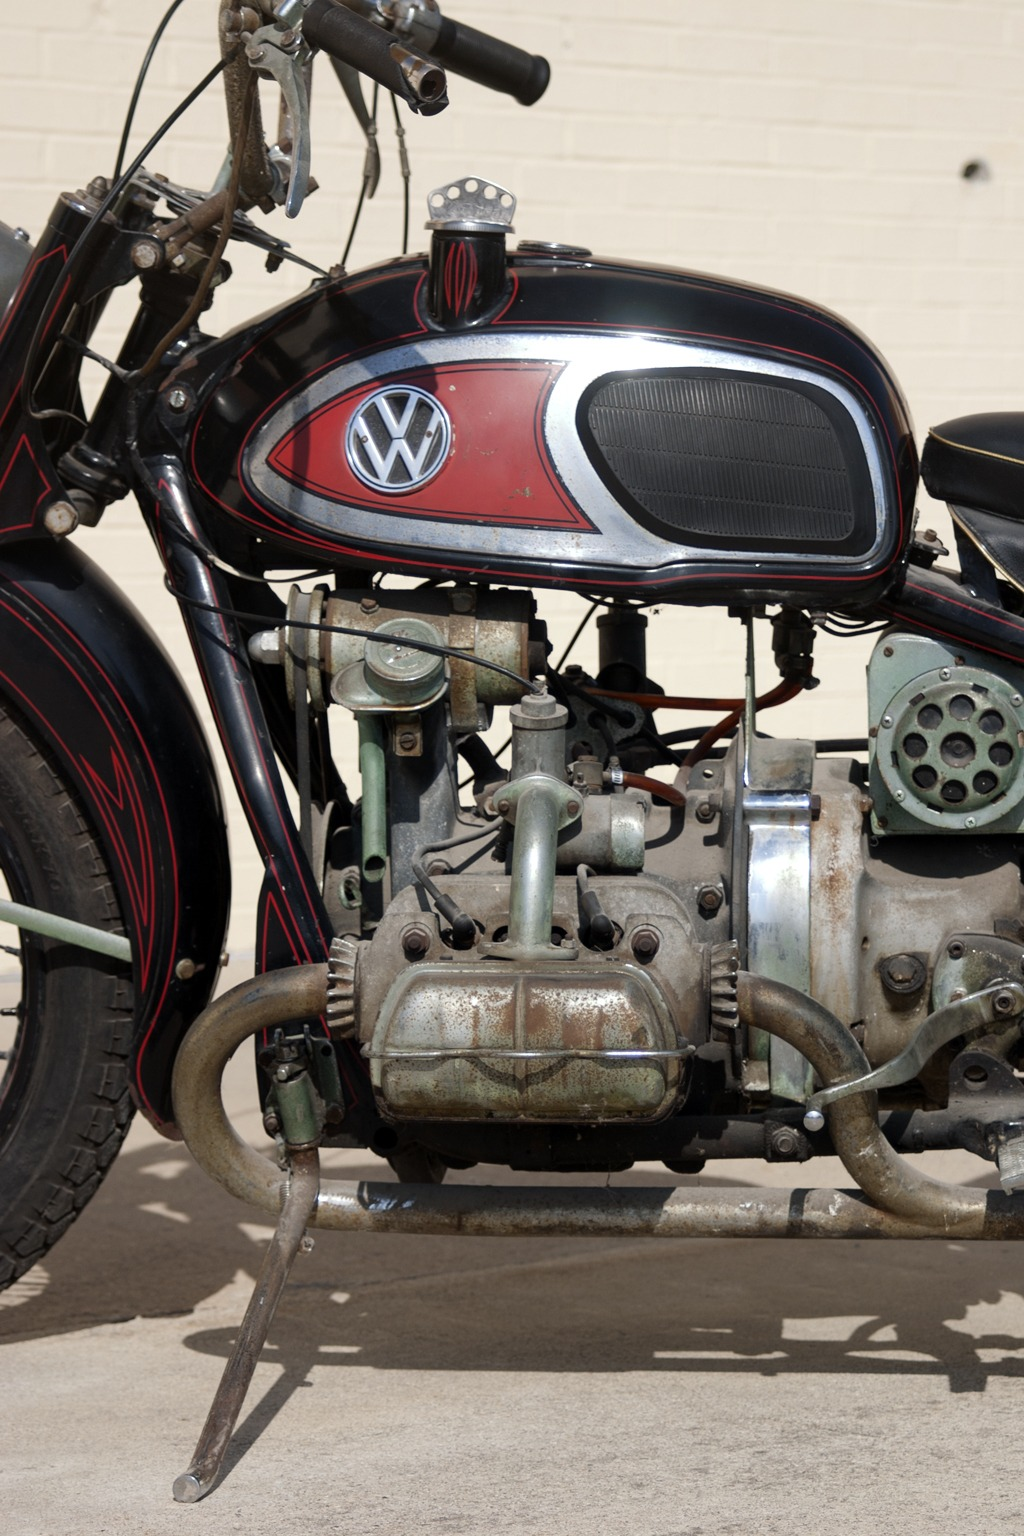 American pickers vondutch xavw hits museum national for Little motors for bicycles